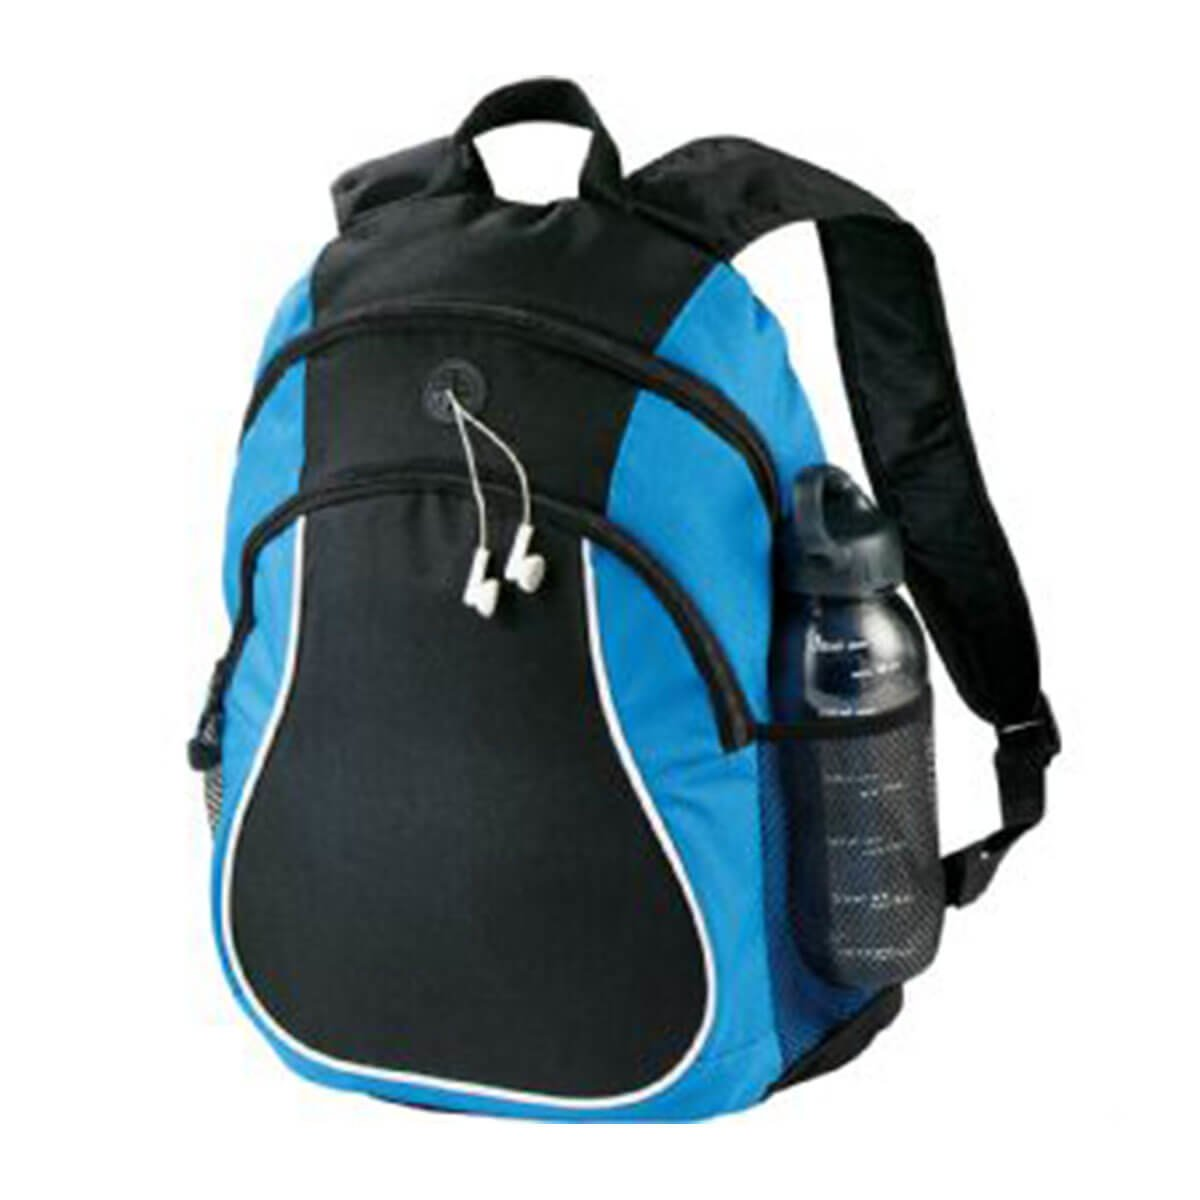 Coil Backpack-Blue and Black with White Trim.